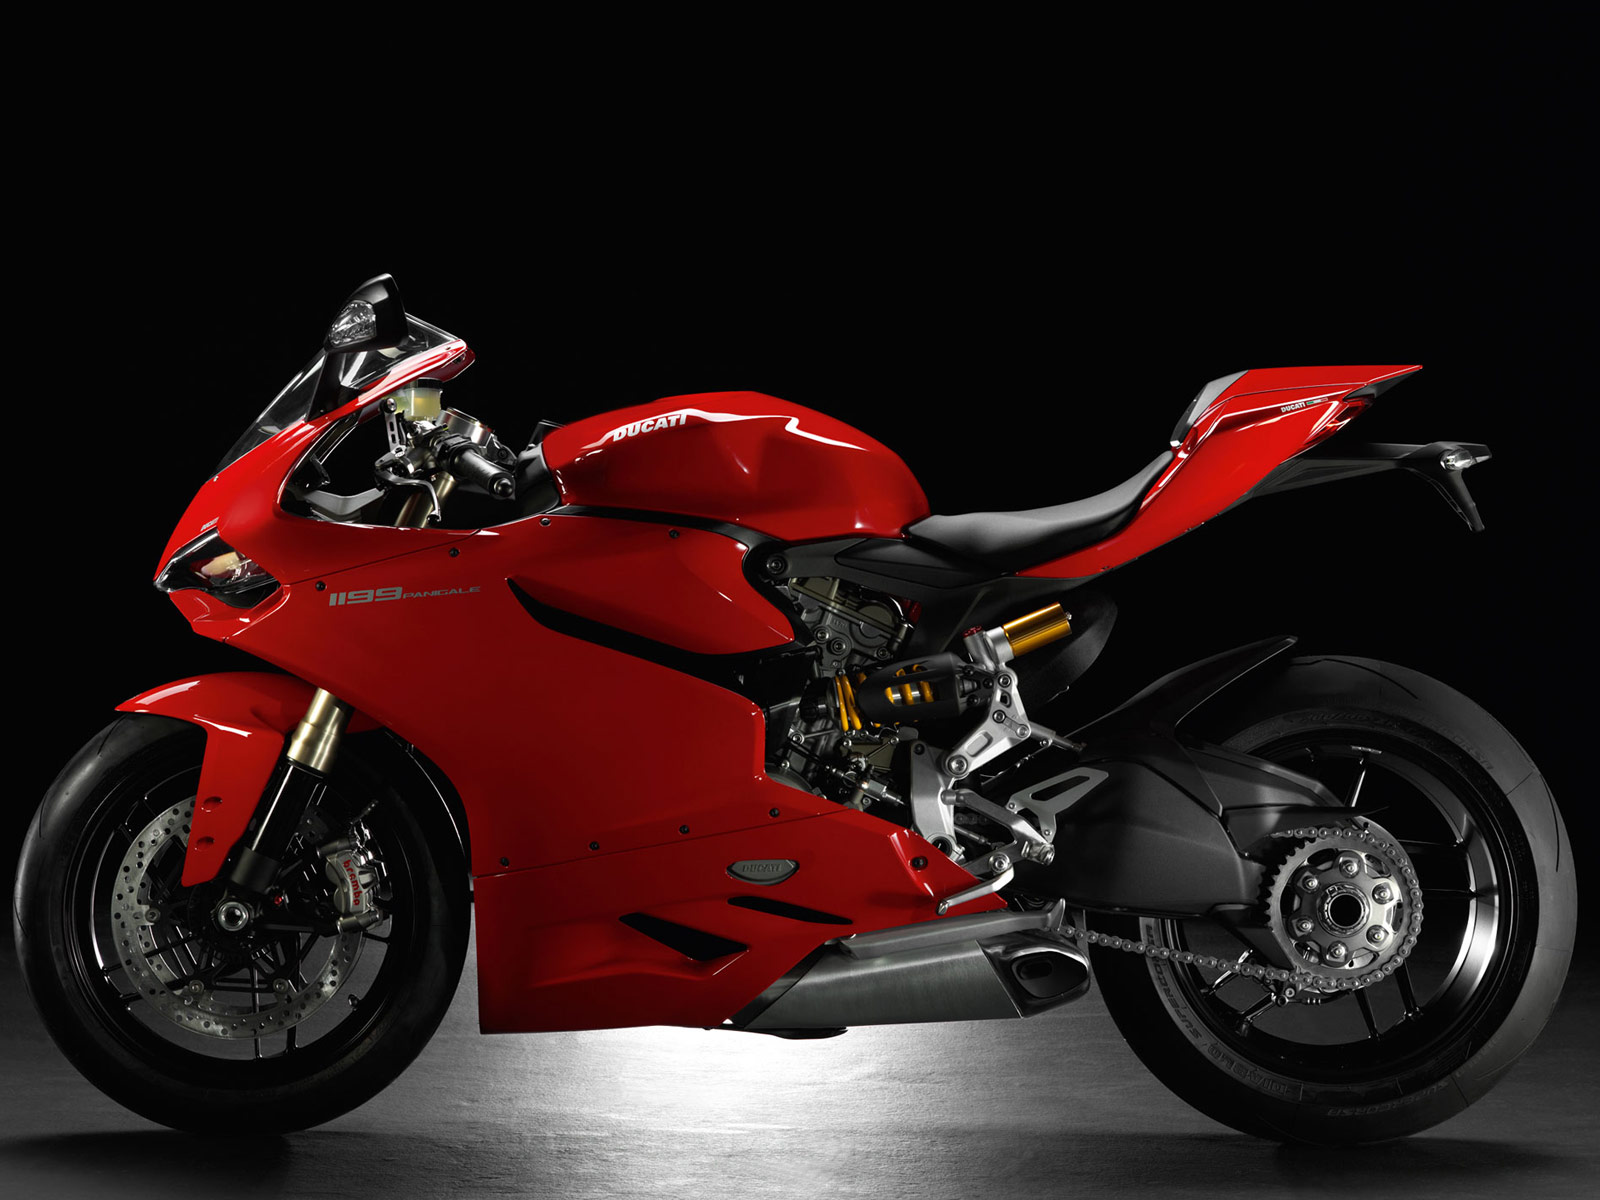 2012 gambar motor ducati 1199 panigale specifications. Black Bedroom Furniture Sets. Home Design Ideas